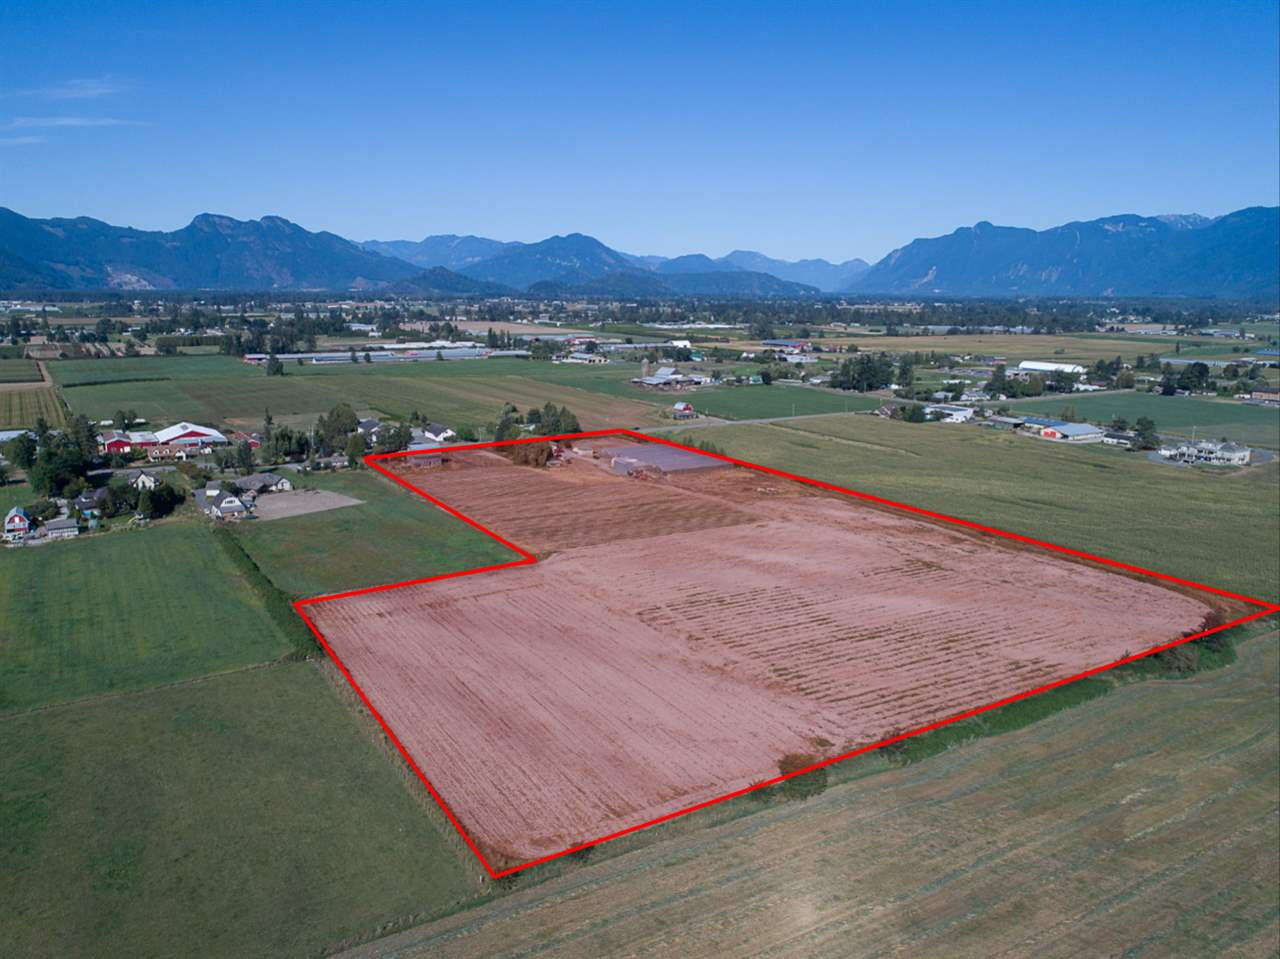 19.9 acres of prime farmland in East Chilliwack. Solid family home totaling 2,700 sq. ft. has 3 bedrooms and some recent updates including furnace, roof, flooring, and more. City water + 200' drilled well. Property offers multiple outbuildings including shop, barn, and greenhouses. Land suitable for blueberries, greenhouse expansion or other agriculture. Great location, only 3 kms from Hwy 1.